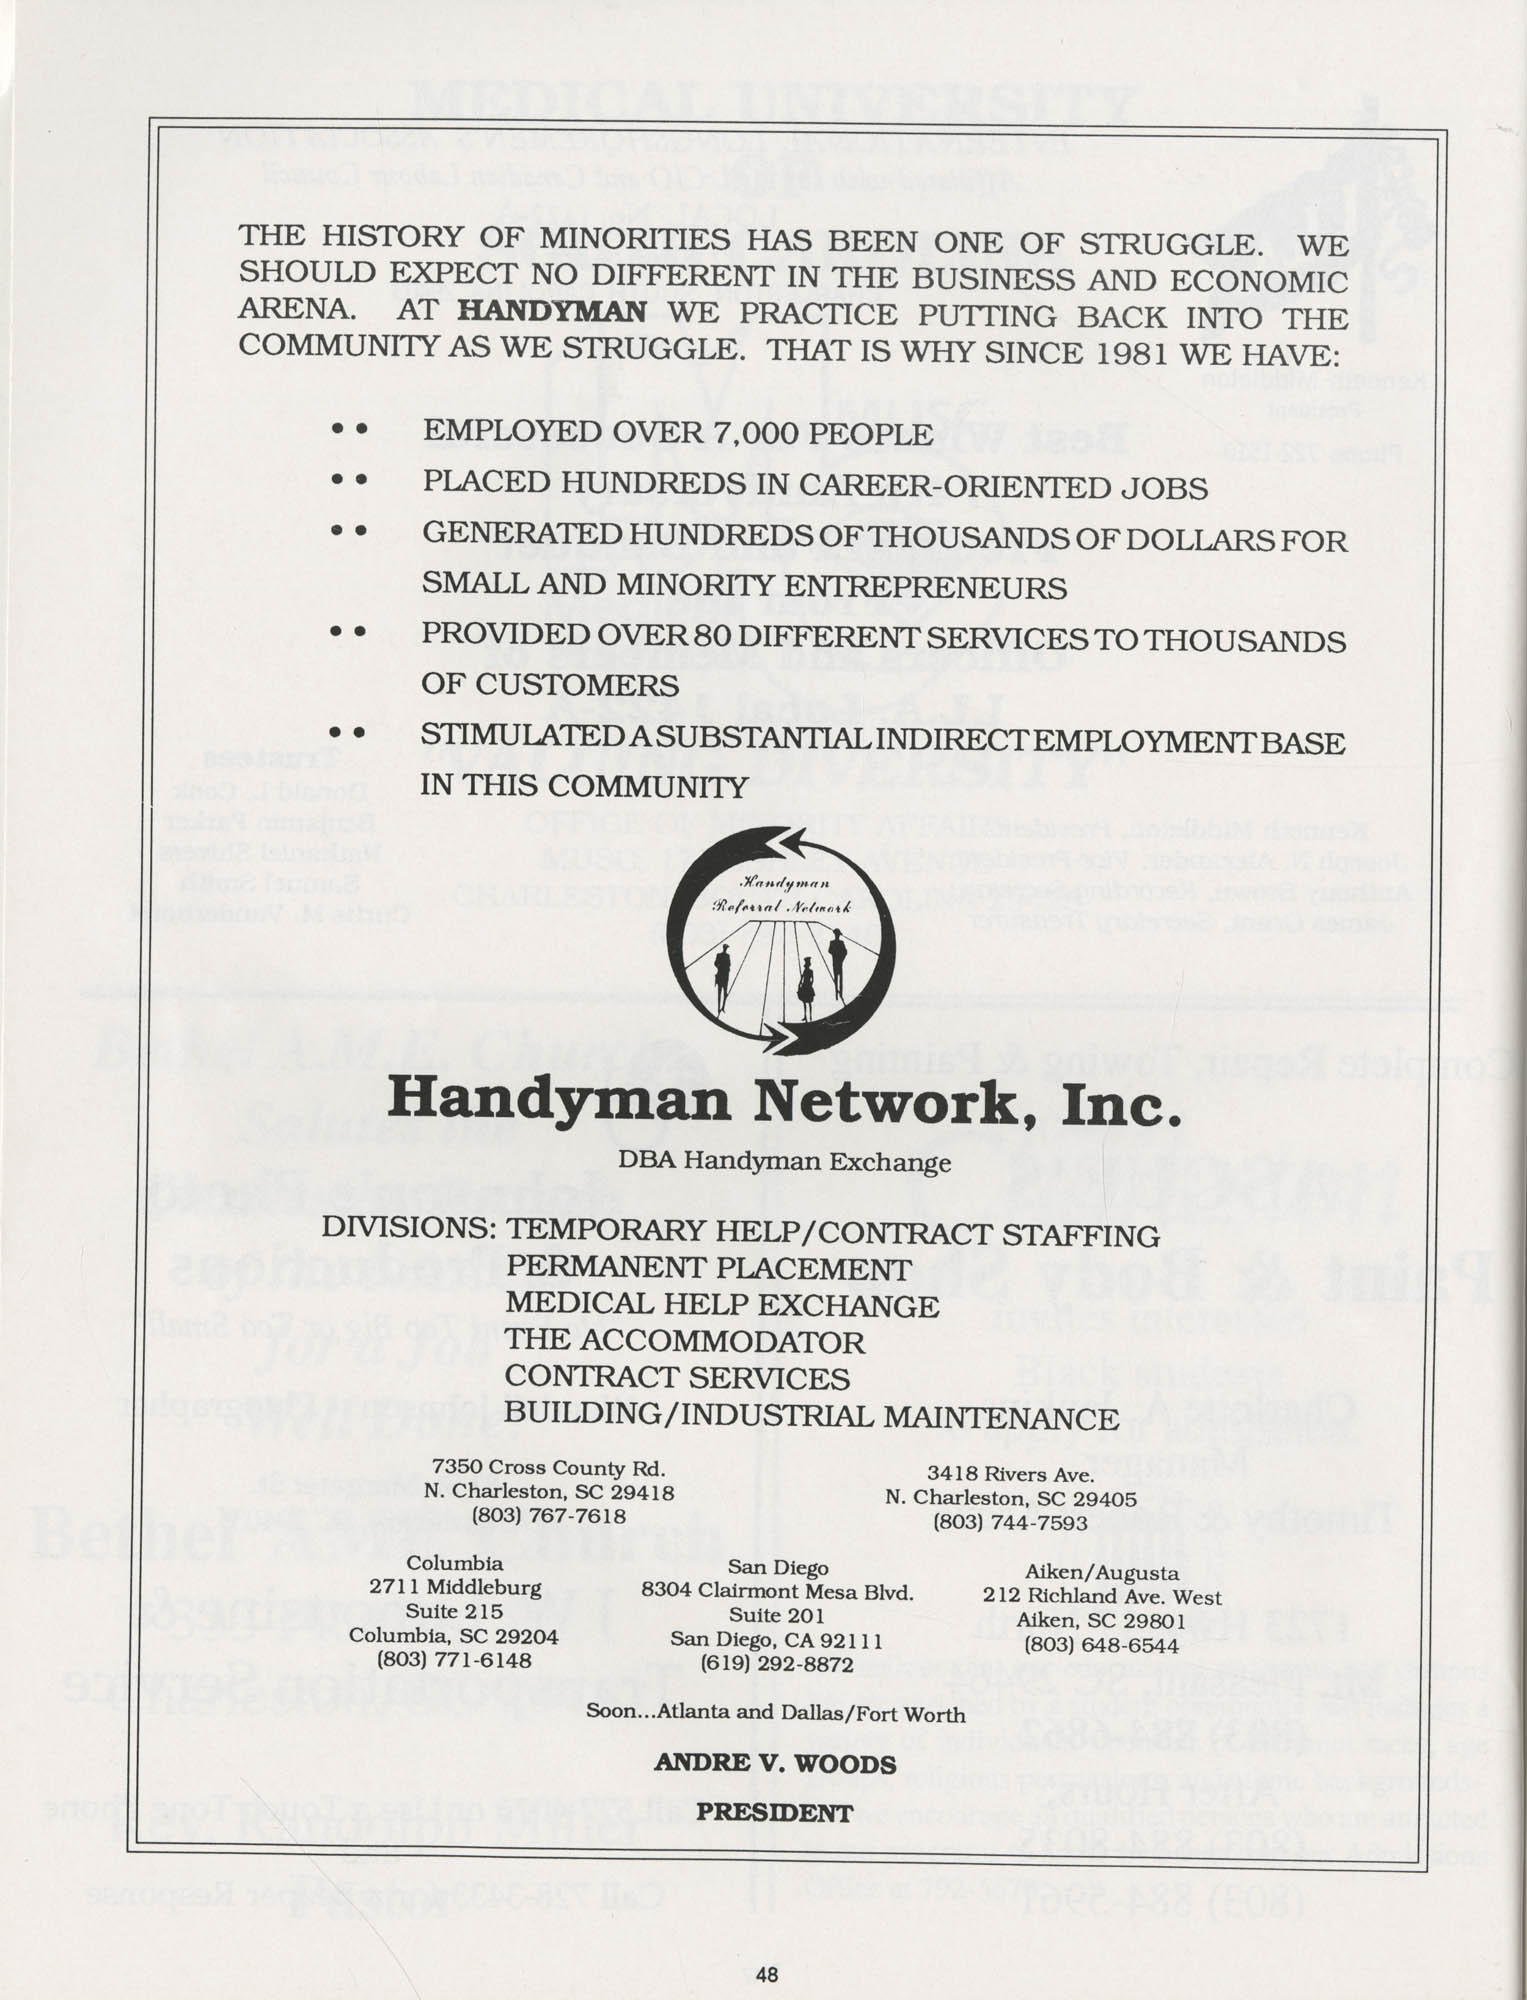 1990 NAACP Freedom Fund Magazine, Charleston Branch of the NAACP, 74th Anniversary, Page 48